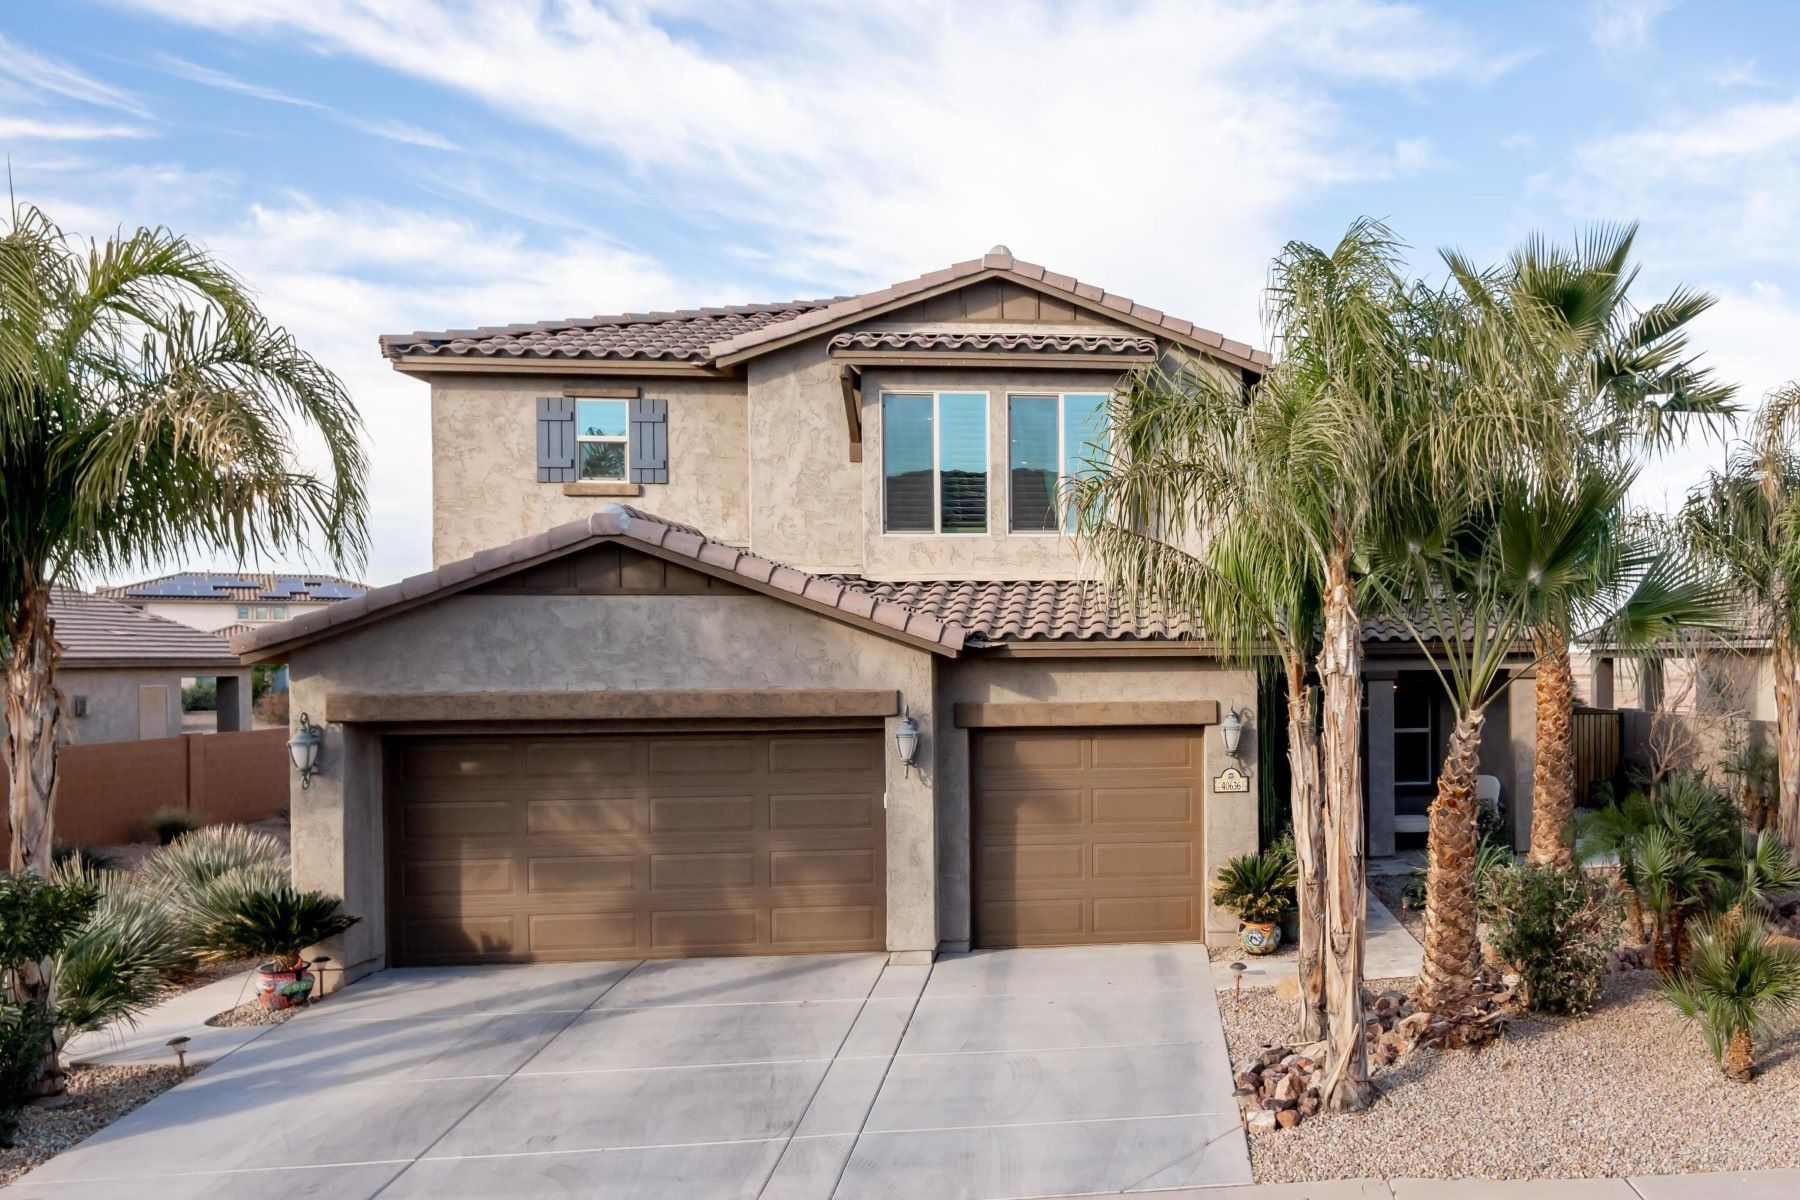 Single Family Homes for Active at Rancho El Dorado 40636 W Parkhill DR Maricopa, Arizona 85138 United States